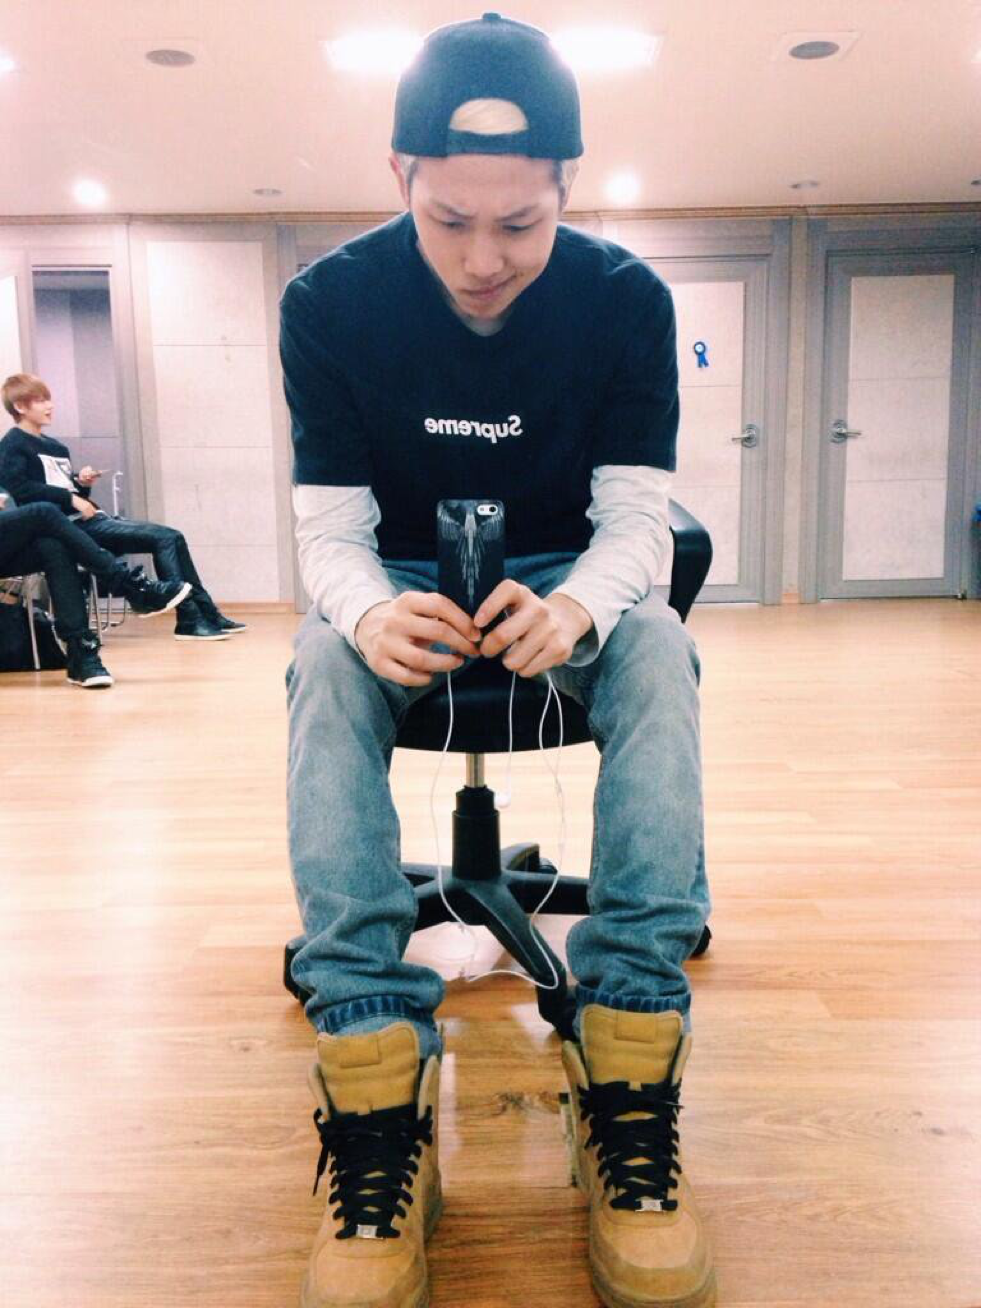 Lol remember when Rap Monster used to dress like this until he started experimenting with fashion xD